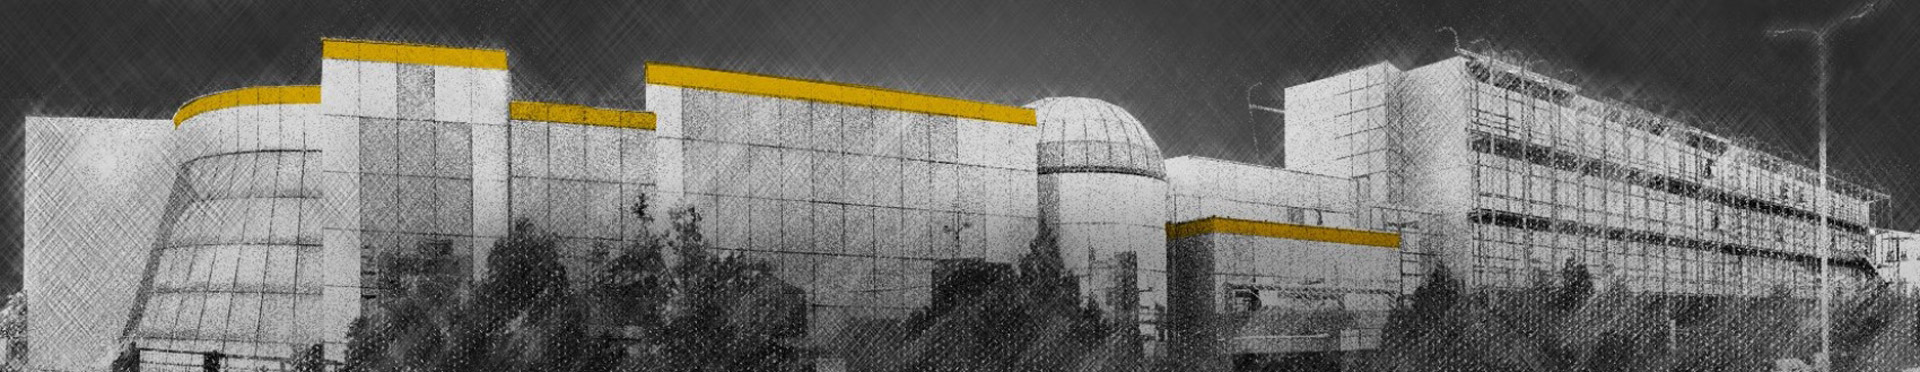 header-factory-yellow